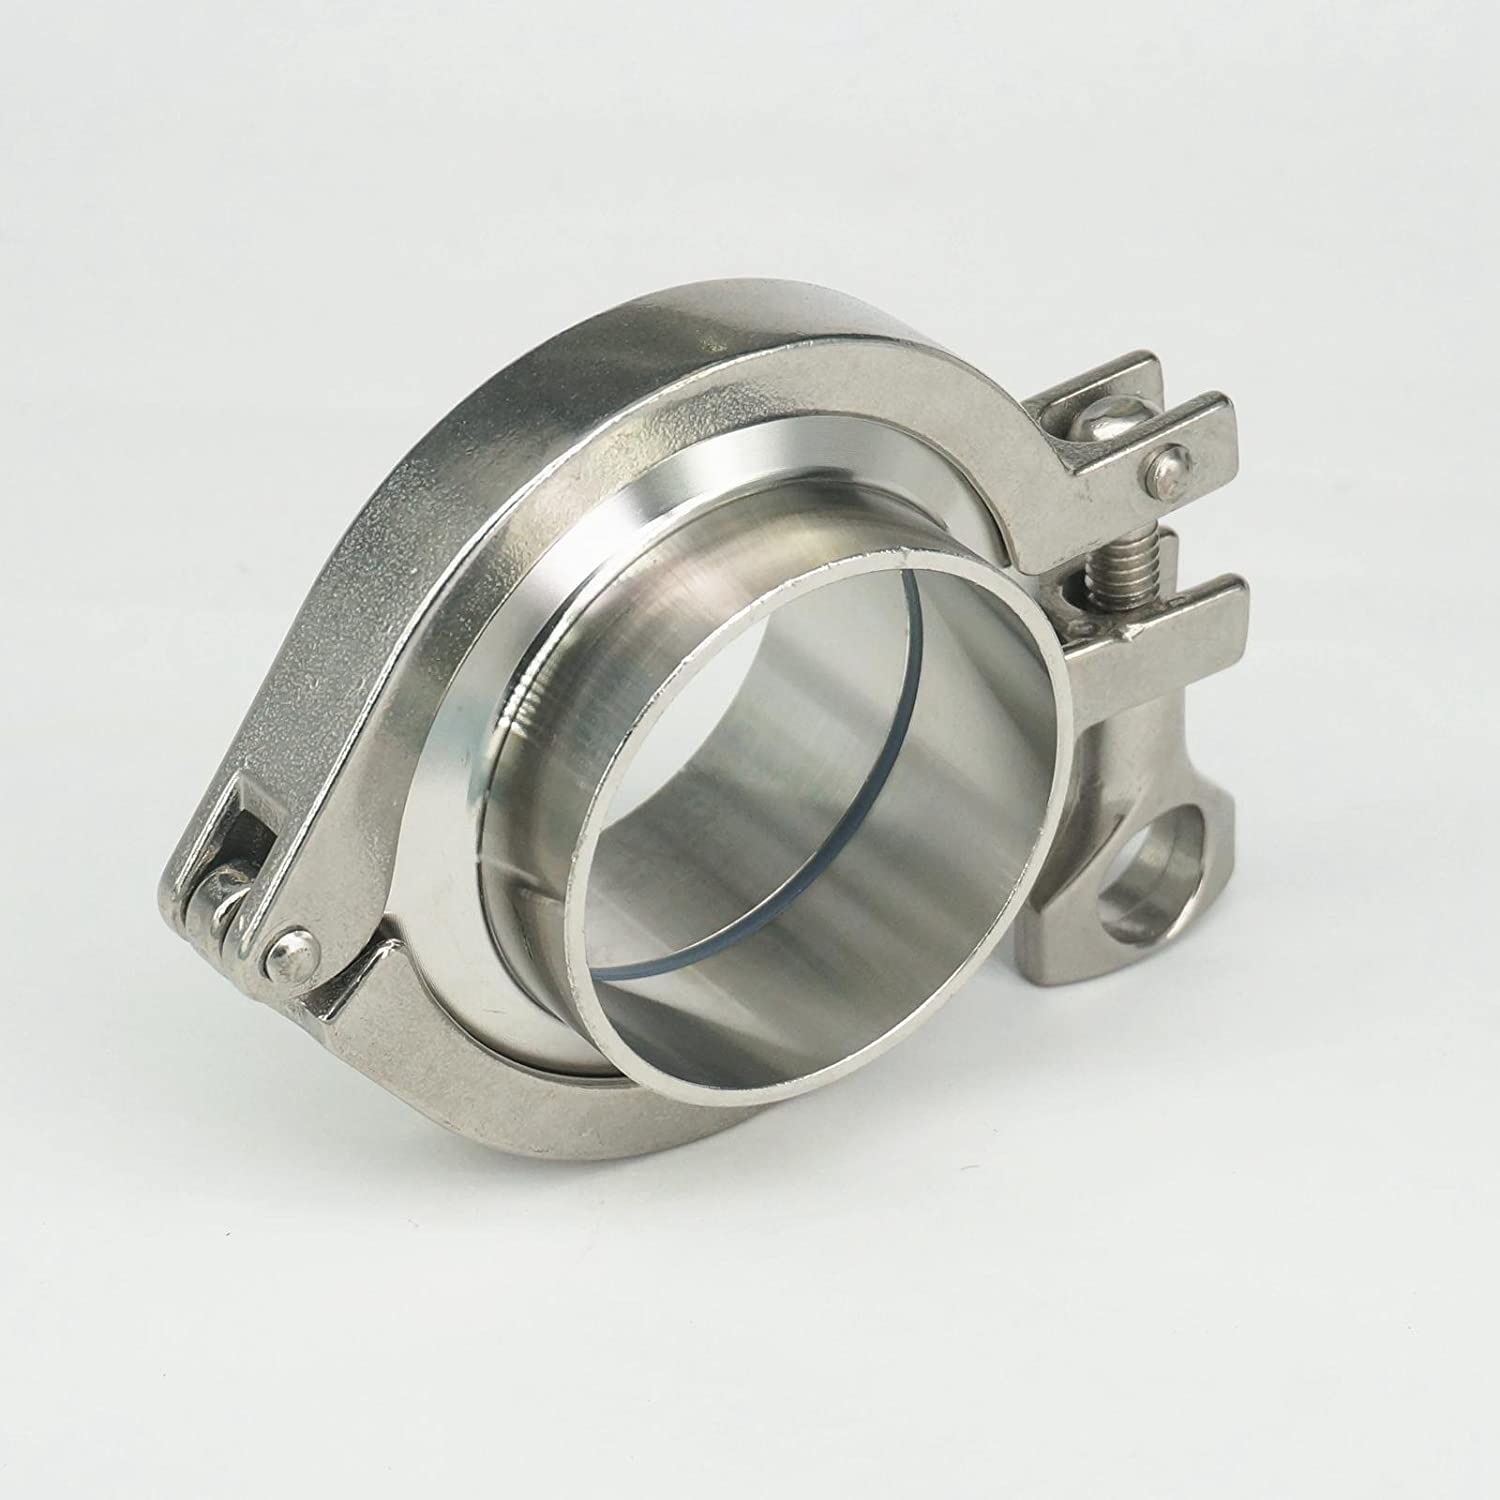 Xucus A Set 57mm O//D Sanitary Tri Clamp Weld Ferrule 2.5 Tri Clamp Silicon Gasket 304 Stainless Steel